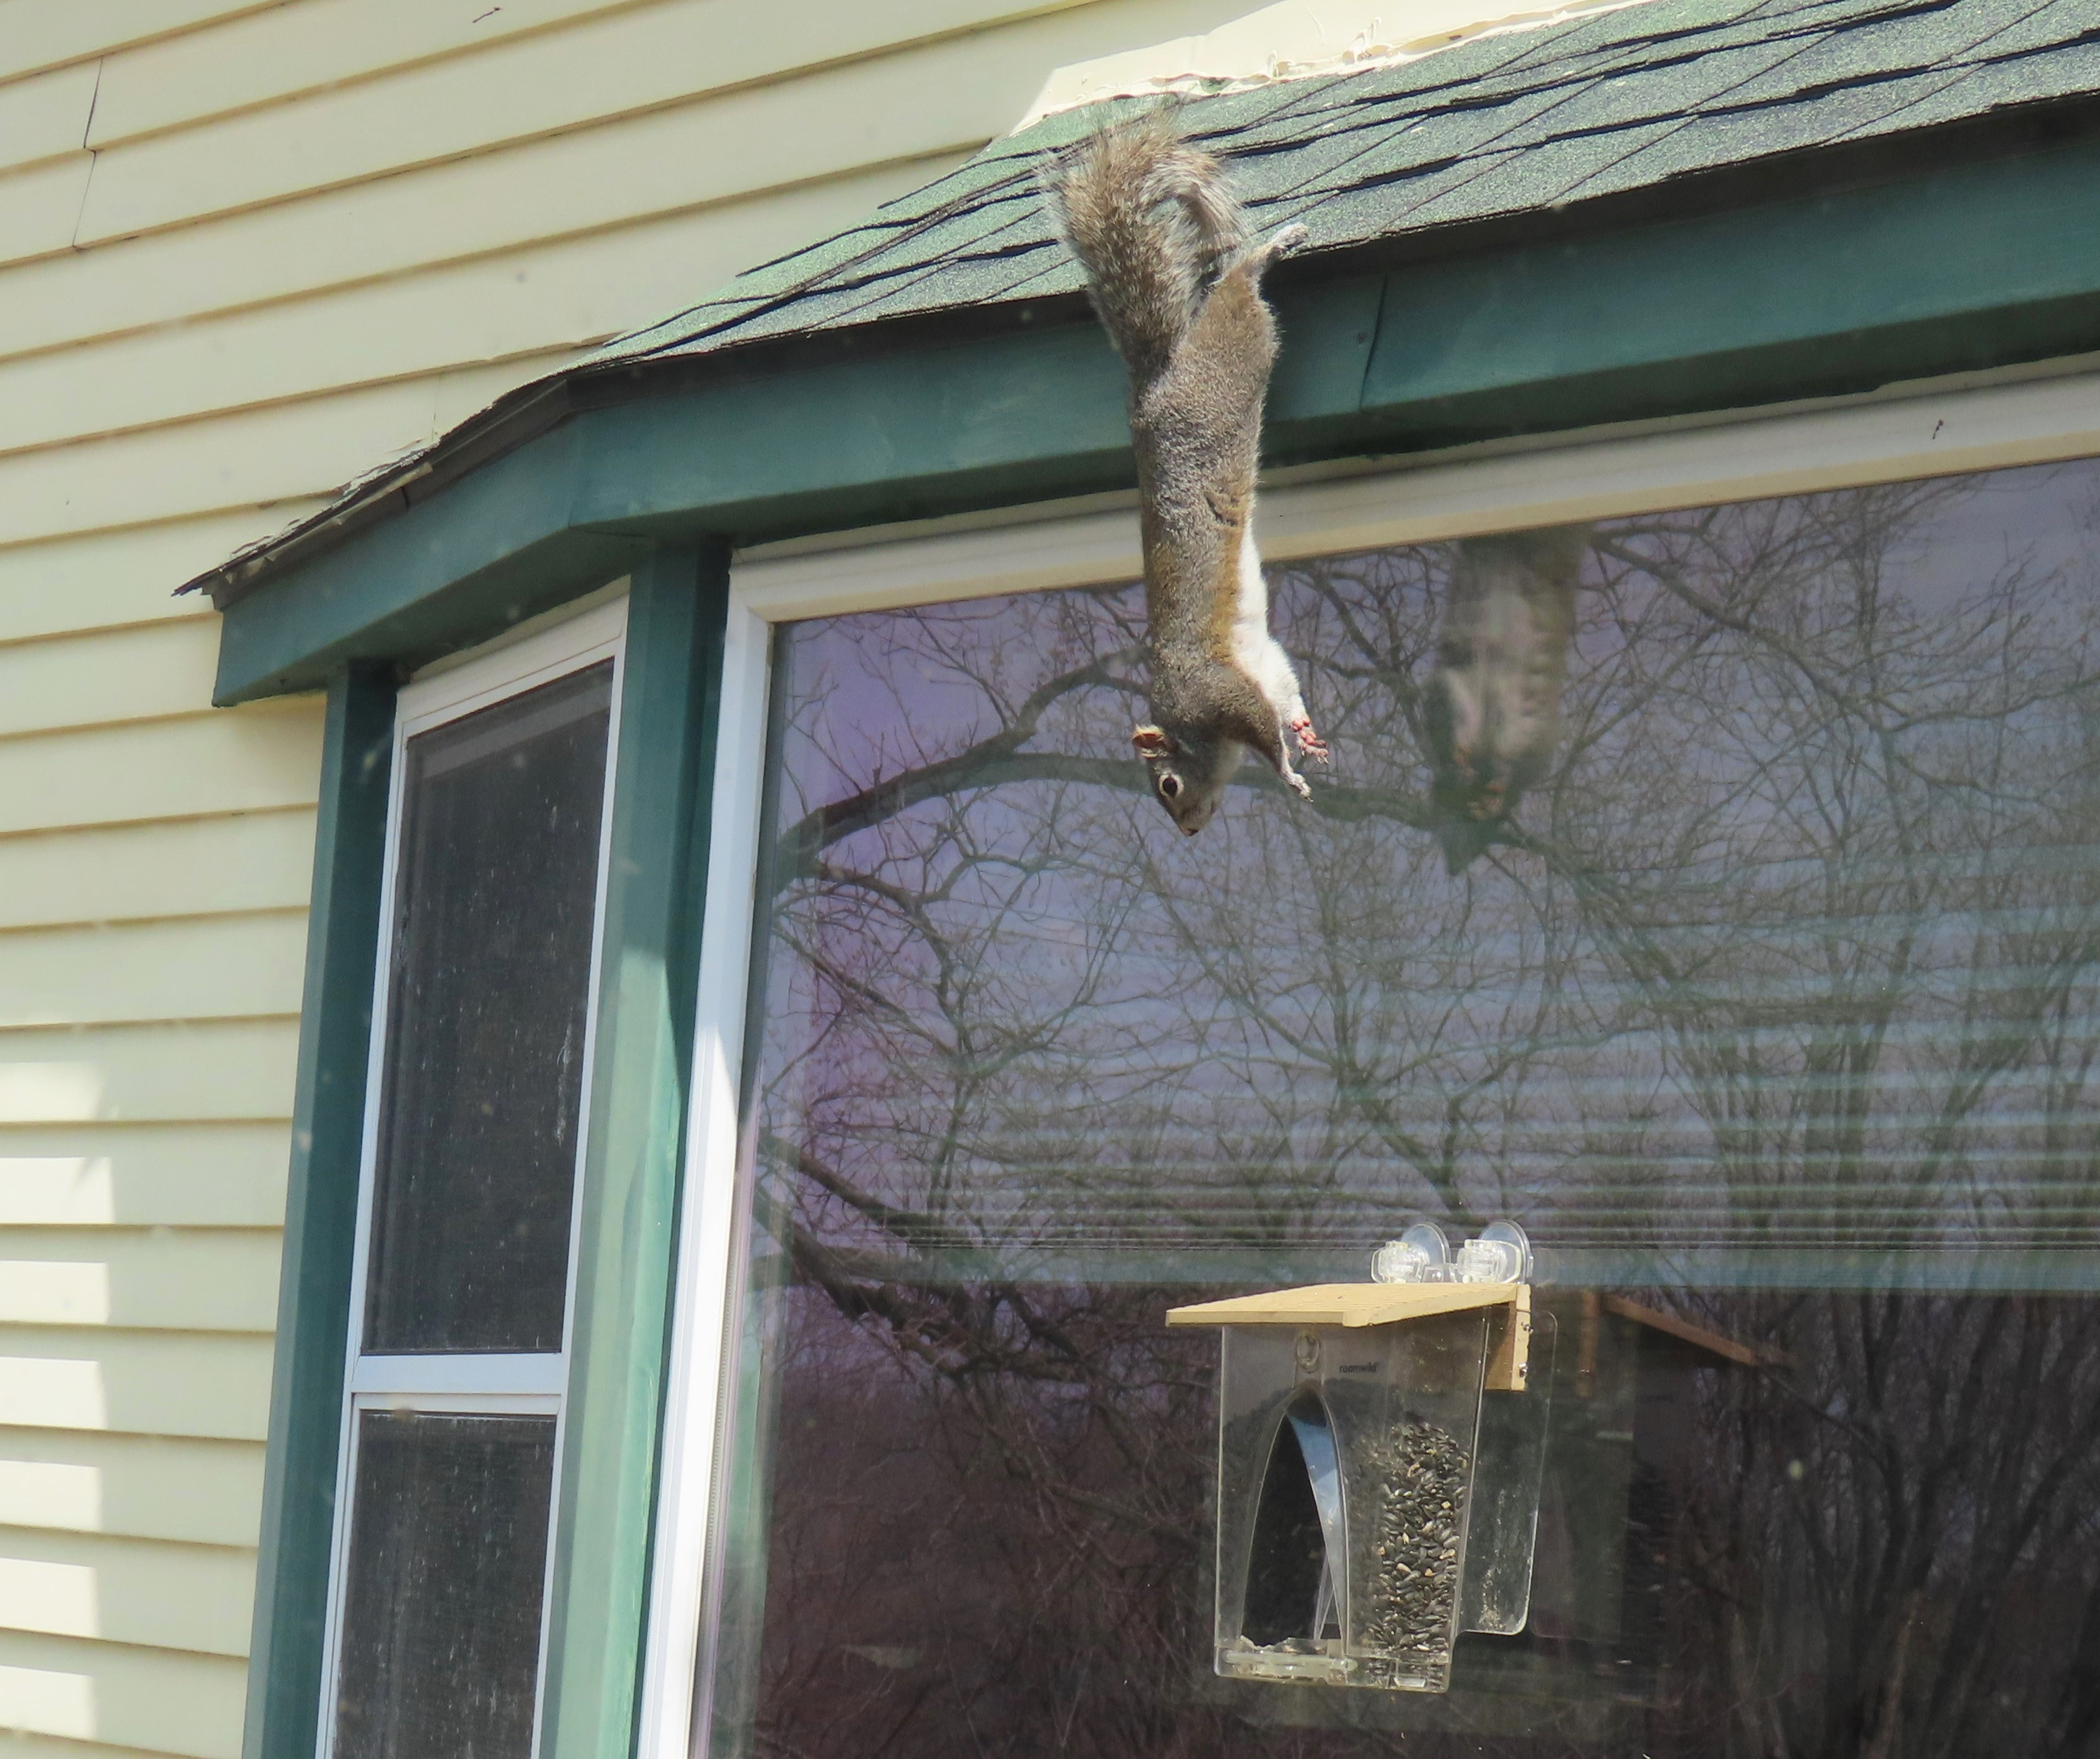 A gray squirrel jumps down from a roof onto a window bird feeder